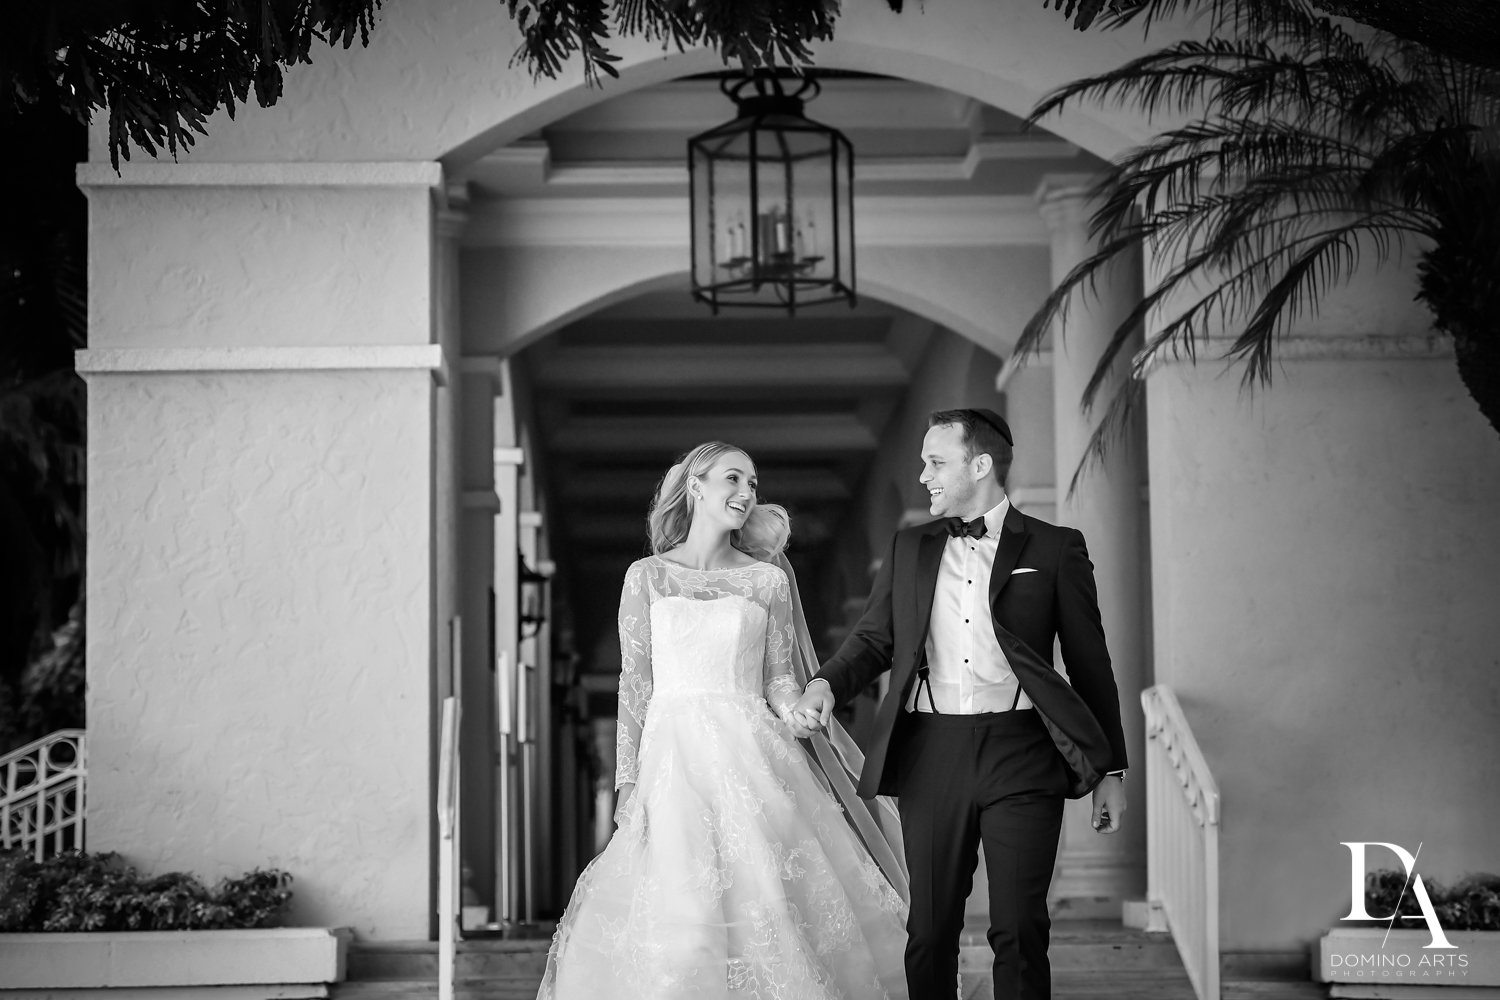 fun B&W wedding photos by domino arts